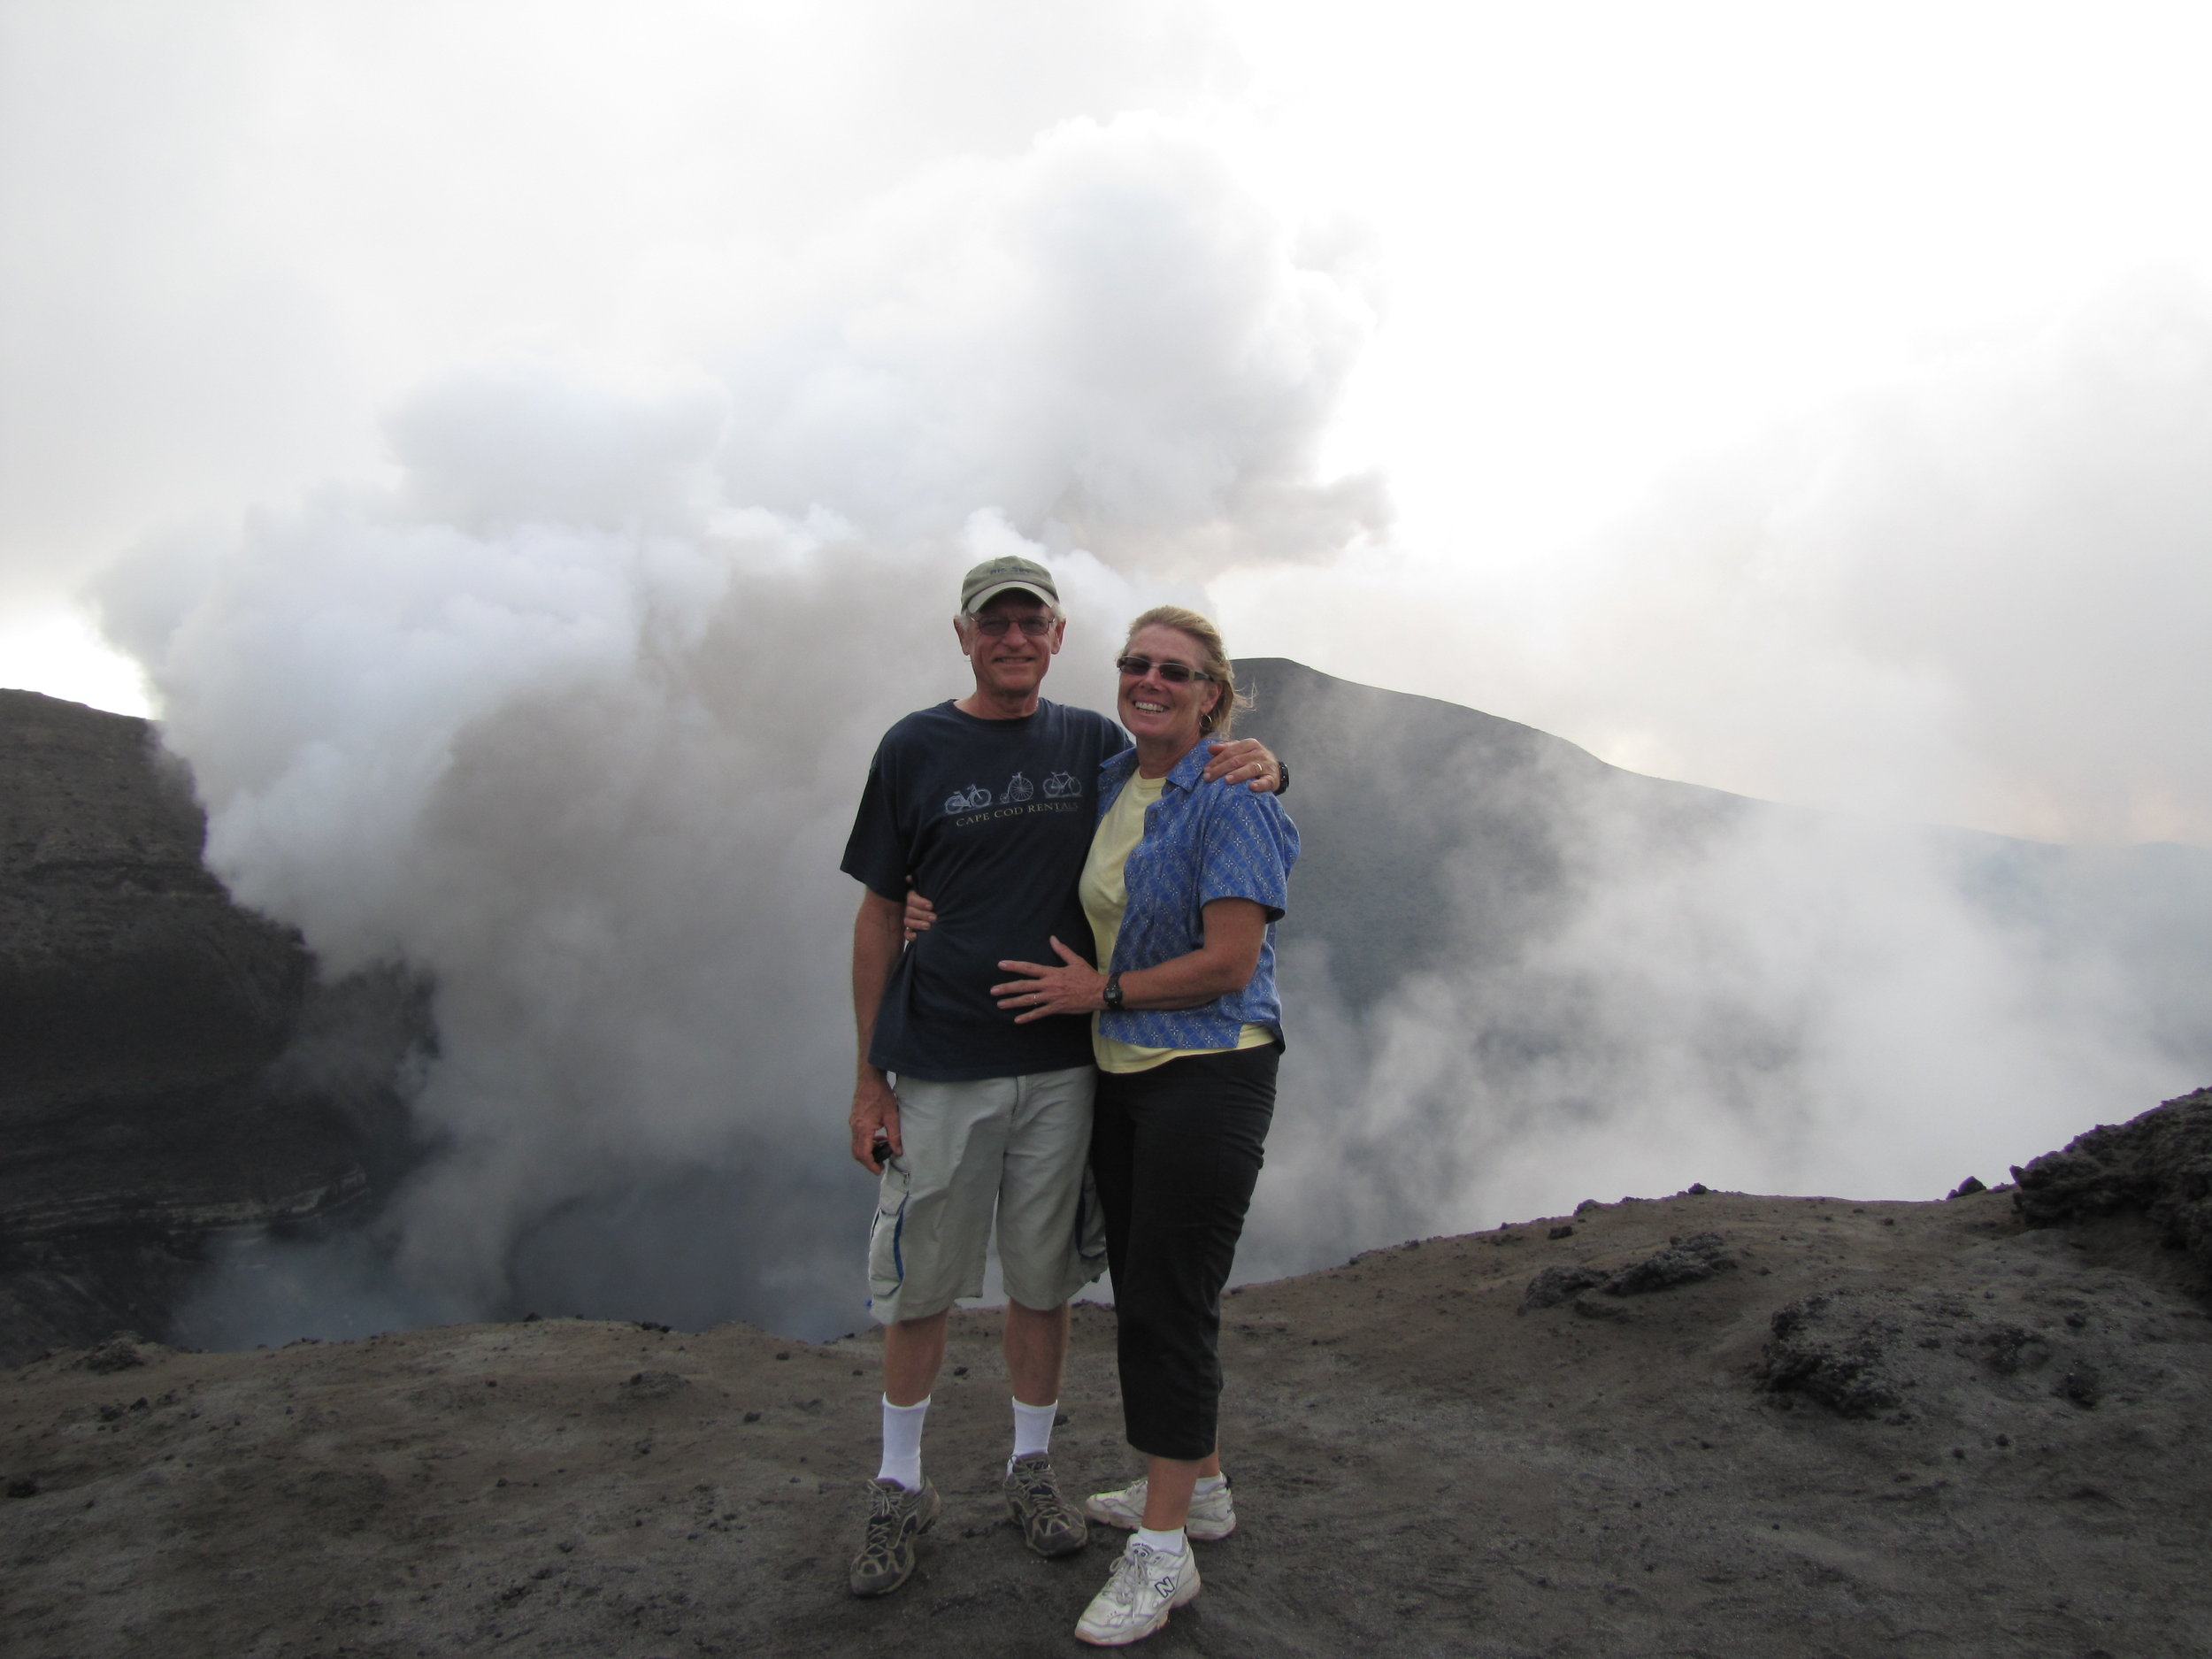 Standing on the edge of Yasur Volcano